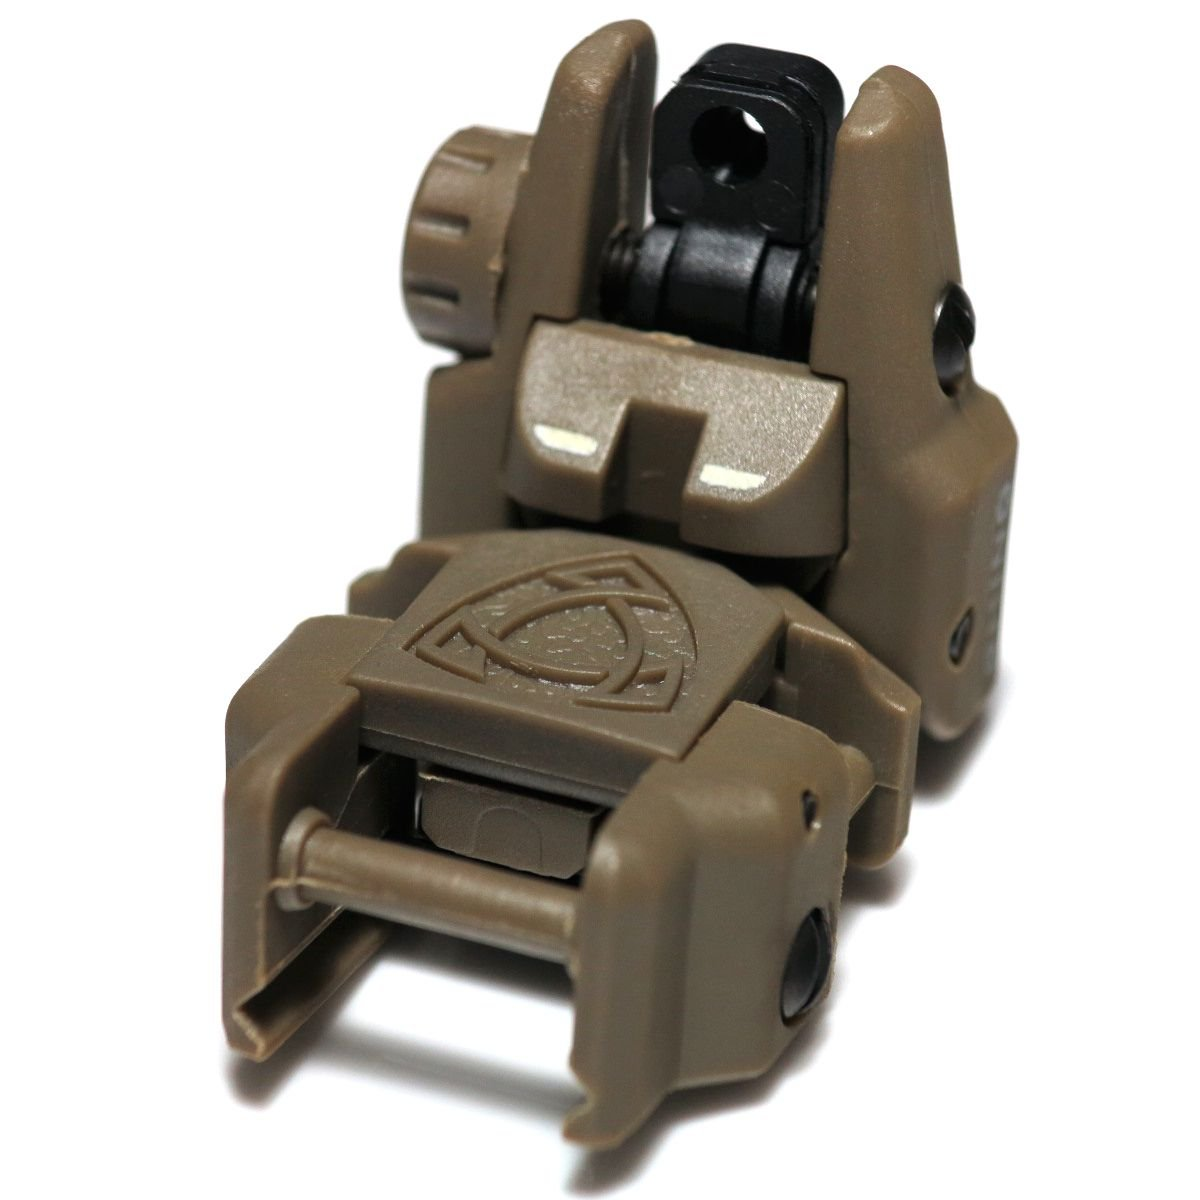 Airsoft Wargame Tactical Shooting Gear APS GG039D Rhino Auxiliary Flip Up Rear Sight Desert Tan Brown